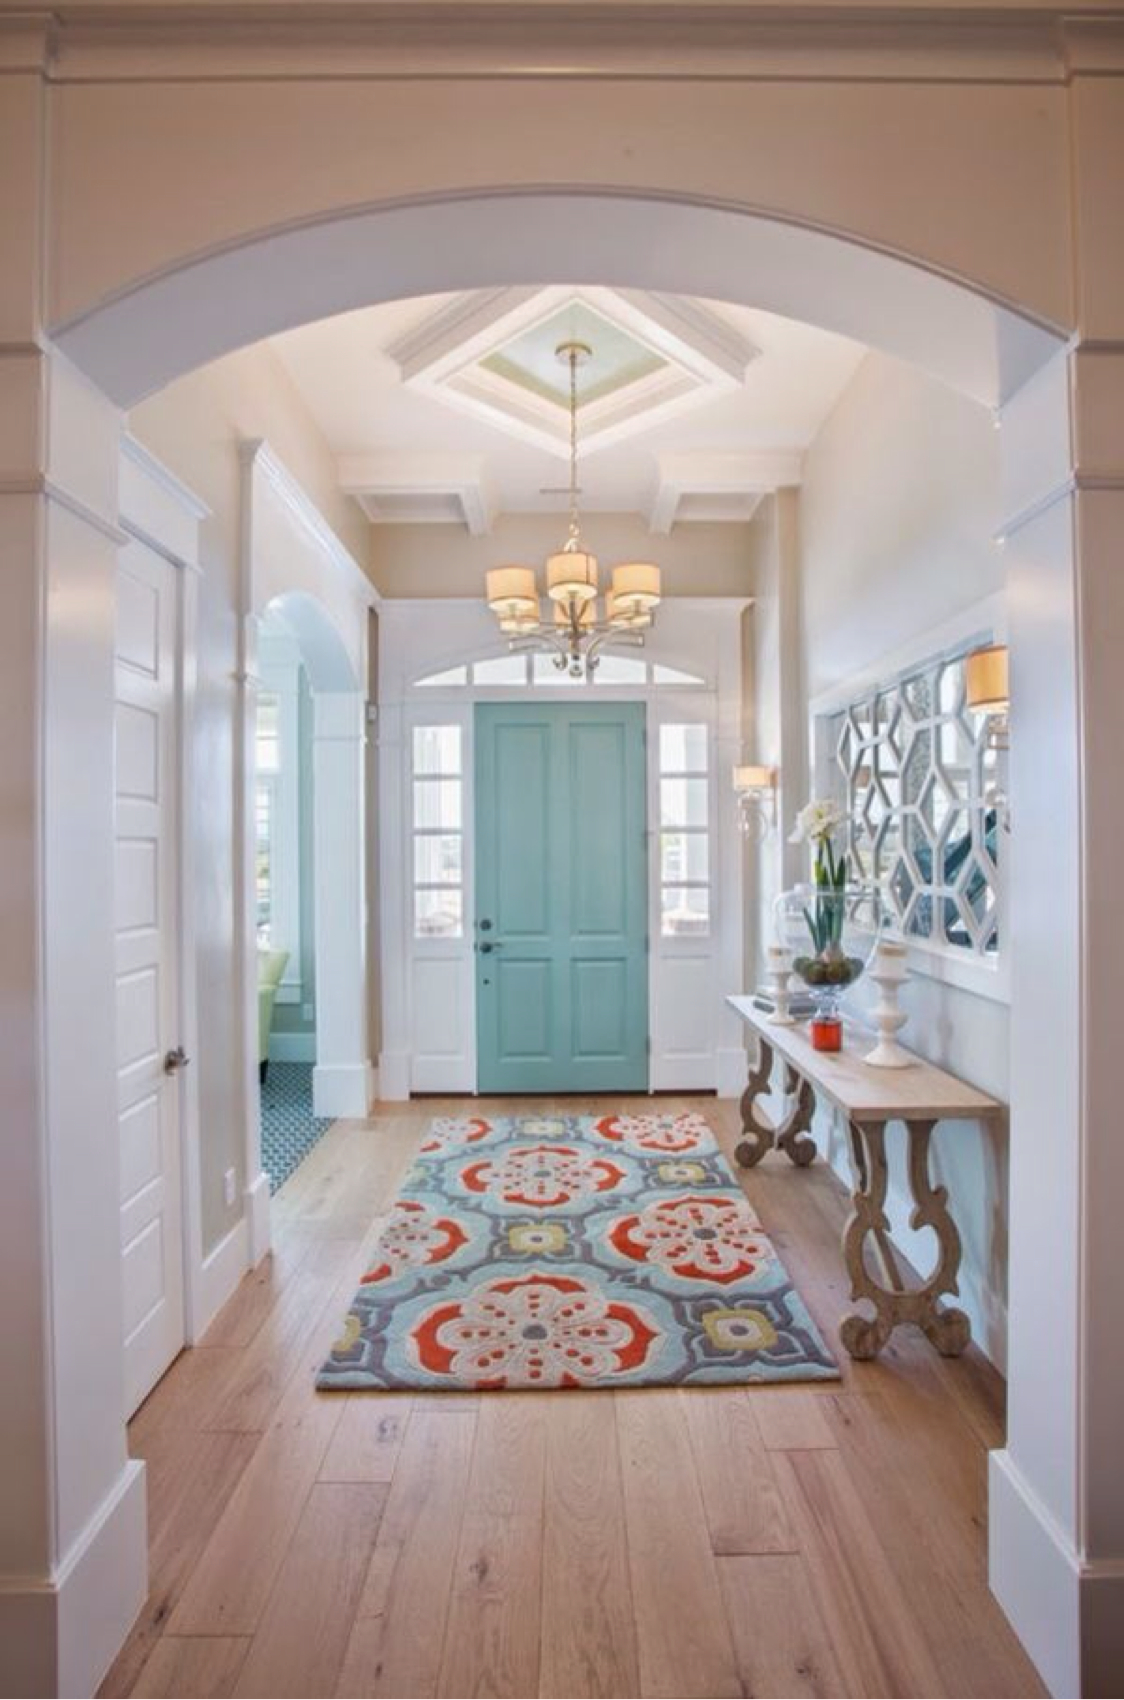 Entryway Foyer Rug : Best rustic entryway decorating ideas and designs for